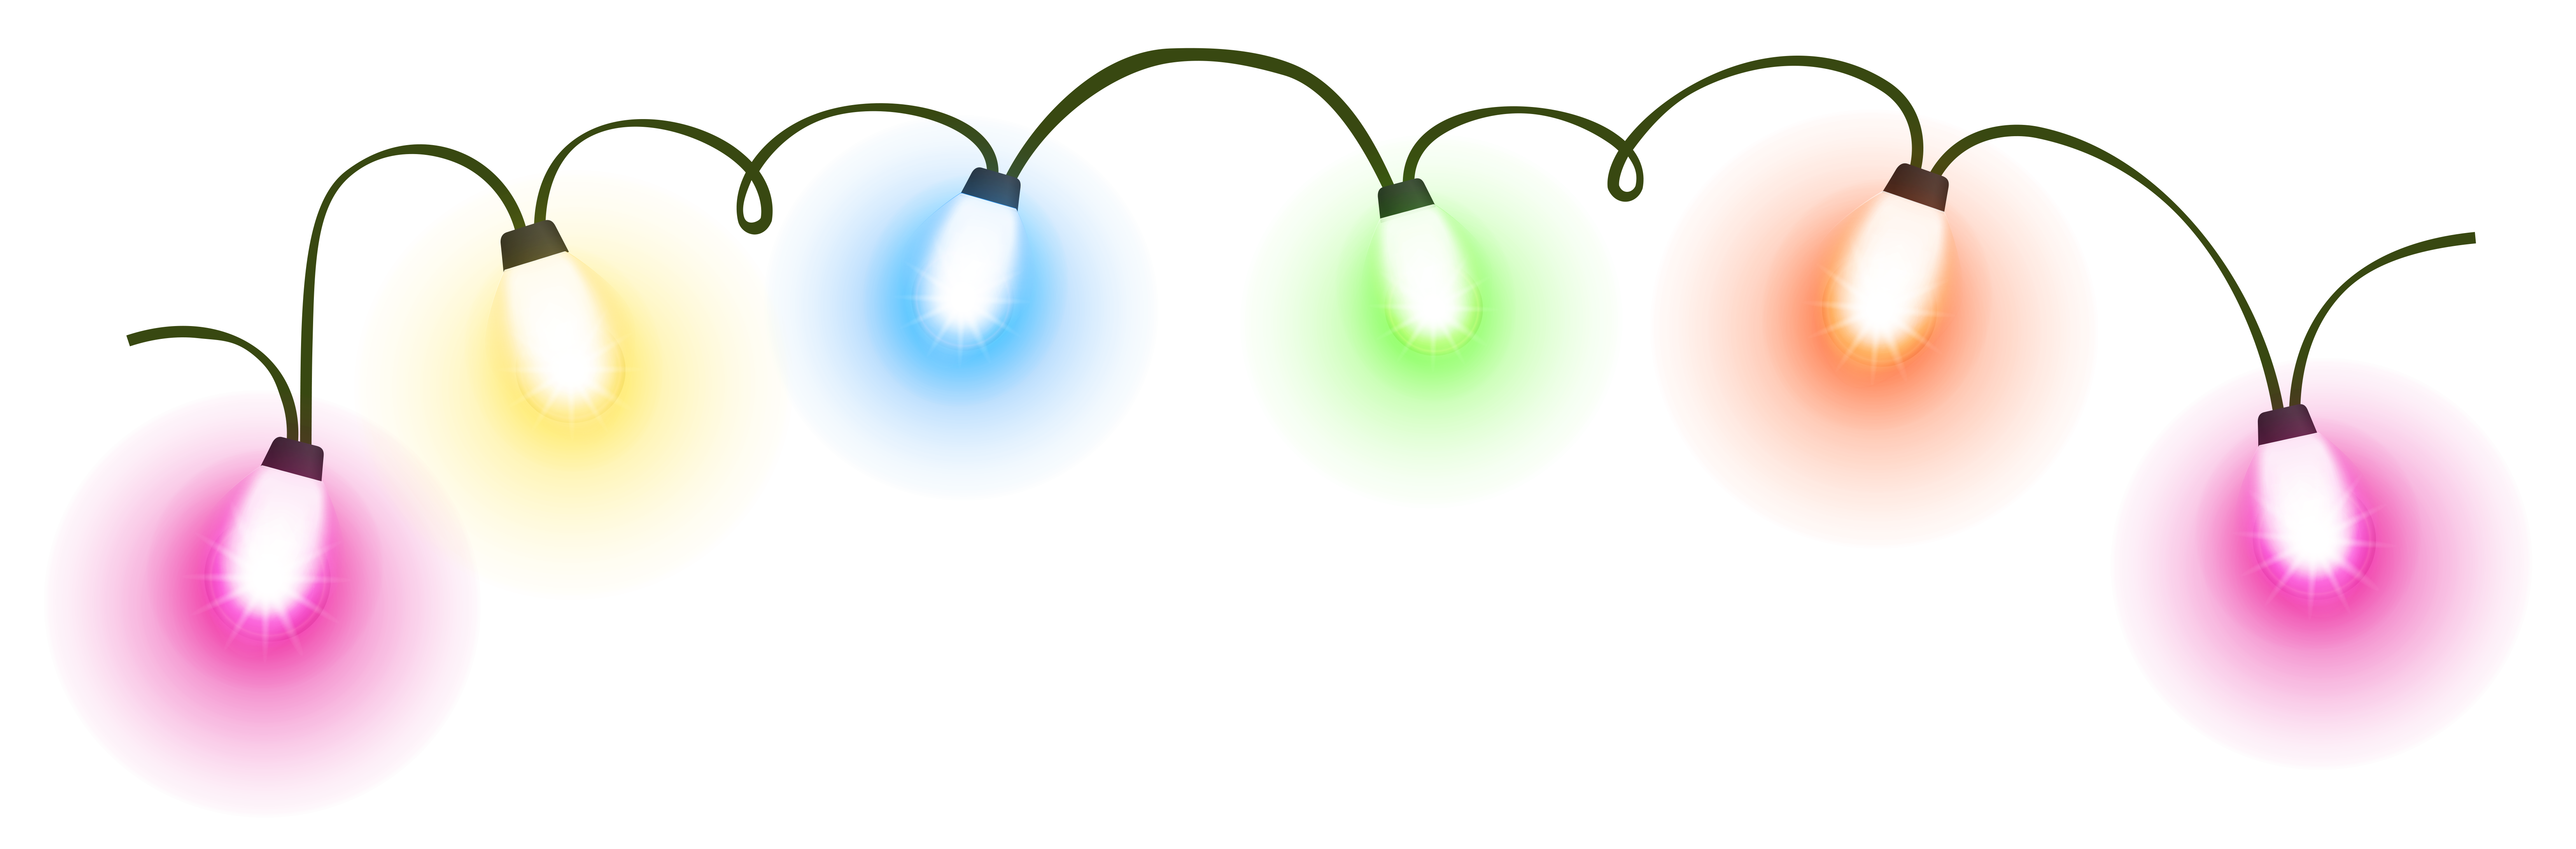 Free Christmas Lights Clipart Pictures